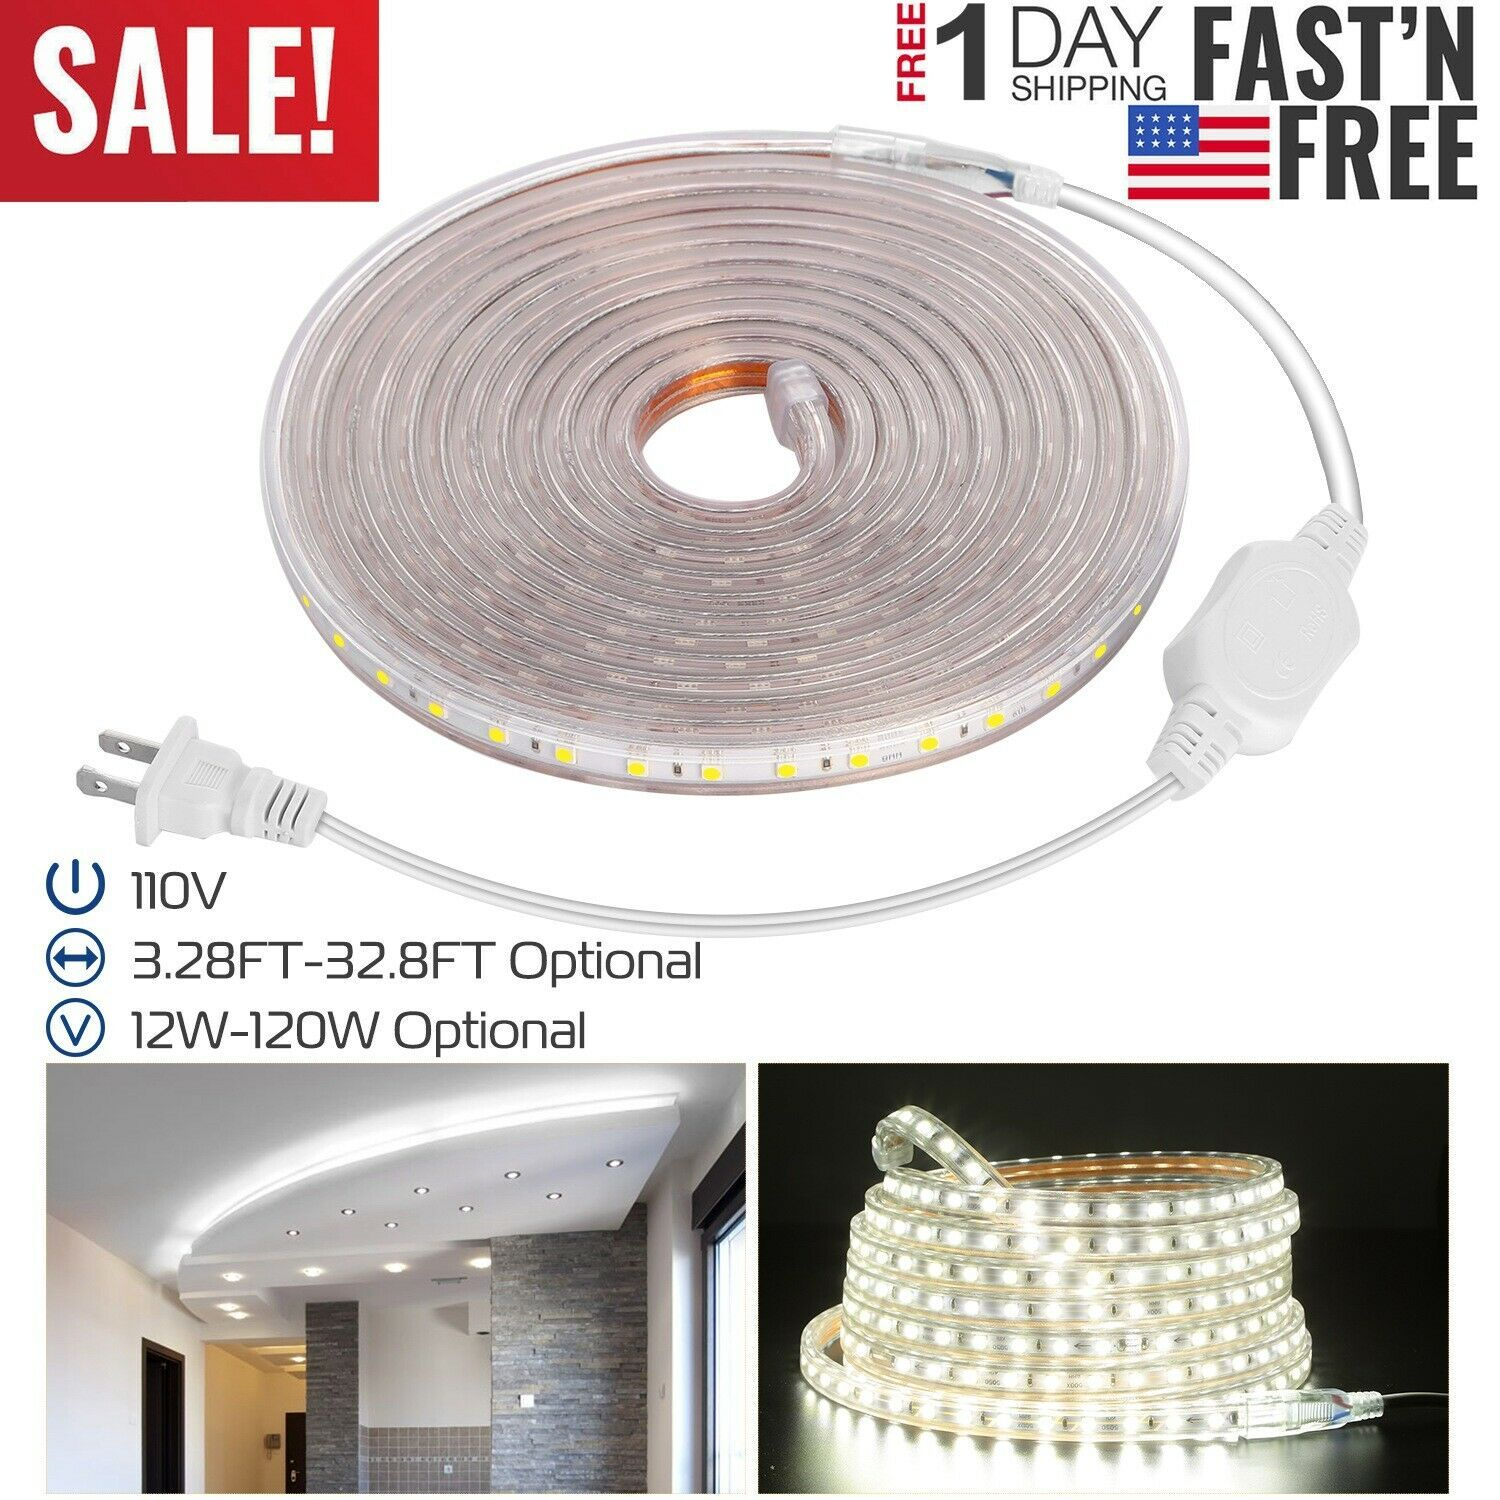 110v Led Strip Light Smd 5050 Flexible Tape Home Outdoor Lighting Rope Us Plug 15 46 Outdoor Lighting Ideas Strip Lighting Led Strip Lighting Led Strip